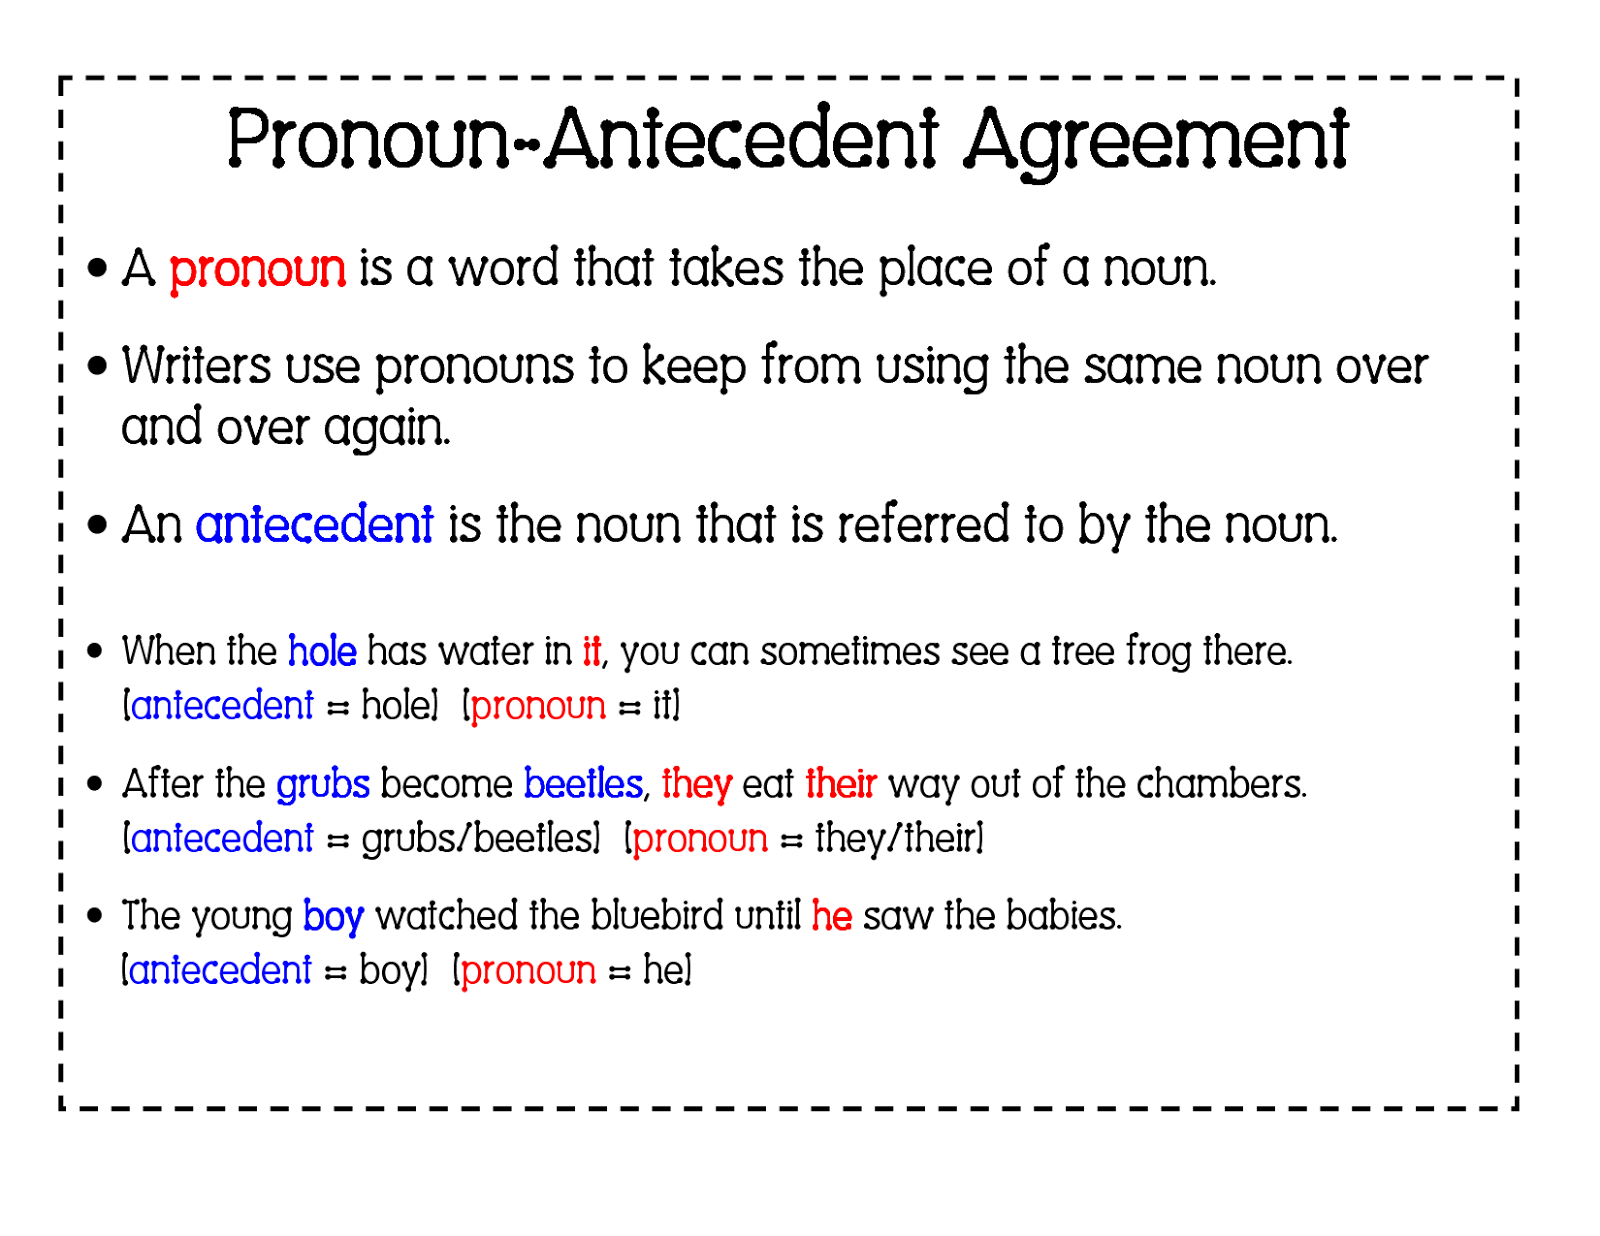 6th Grade English with Mr. T: Pronoun / Antecedent Agreement Part 2